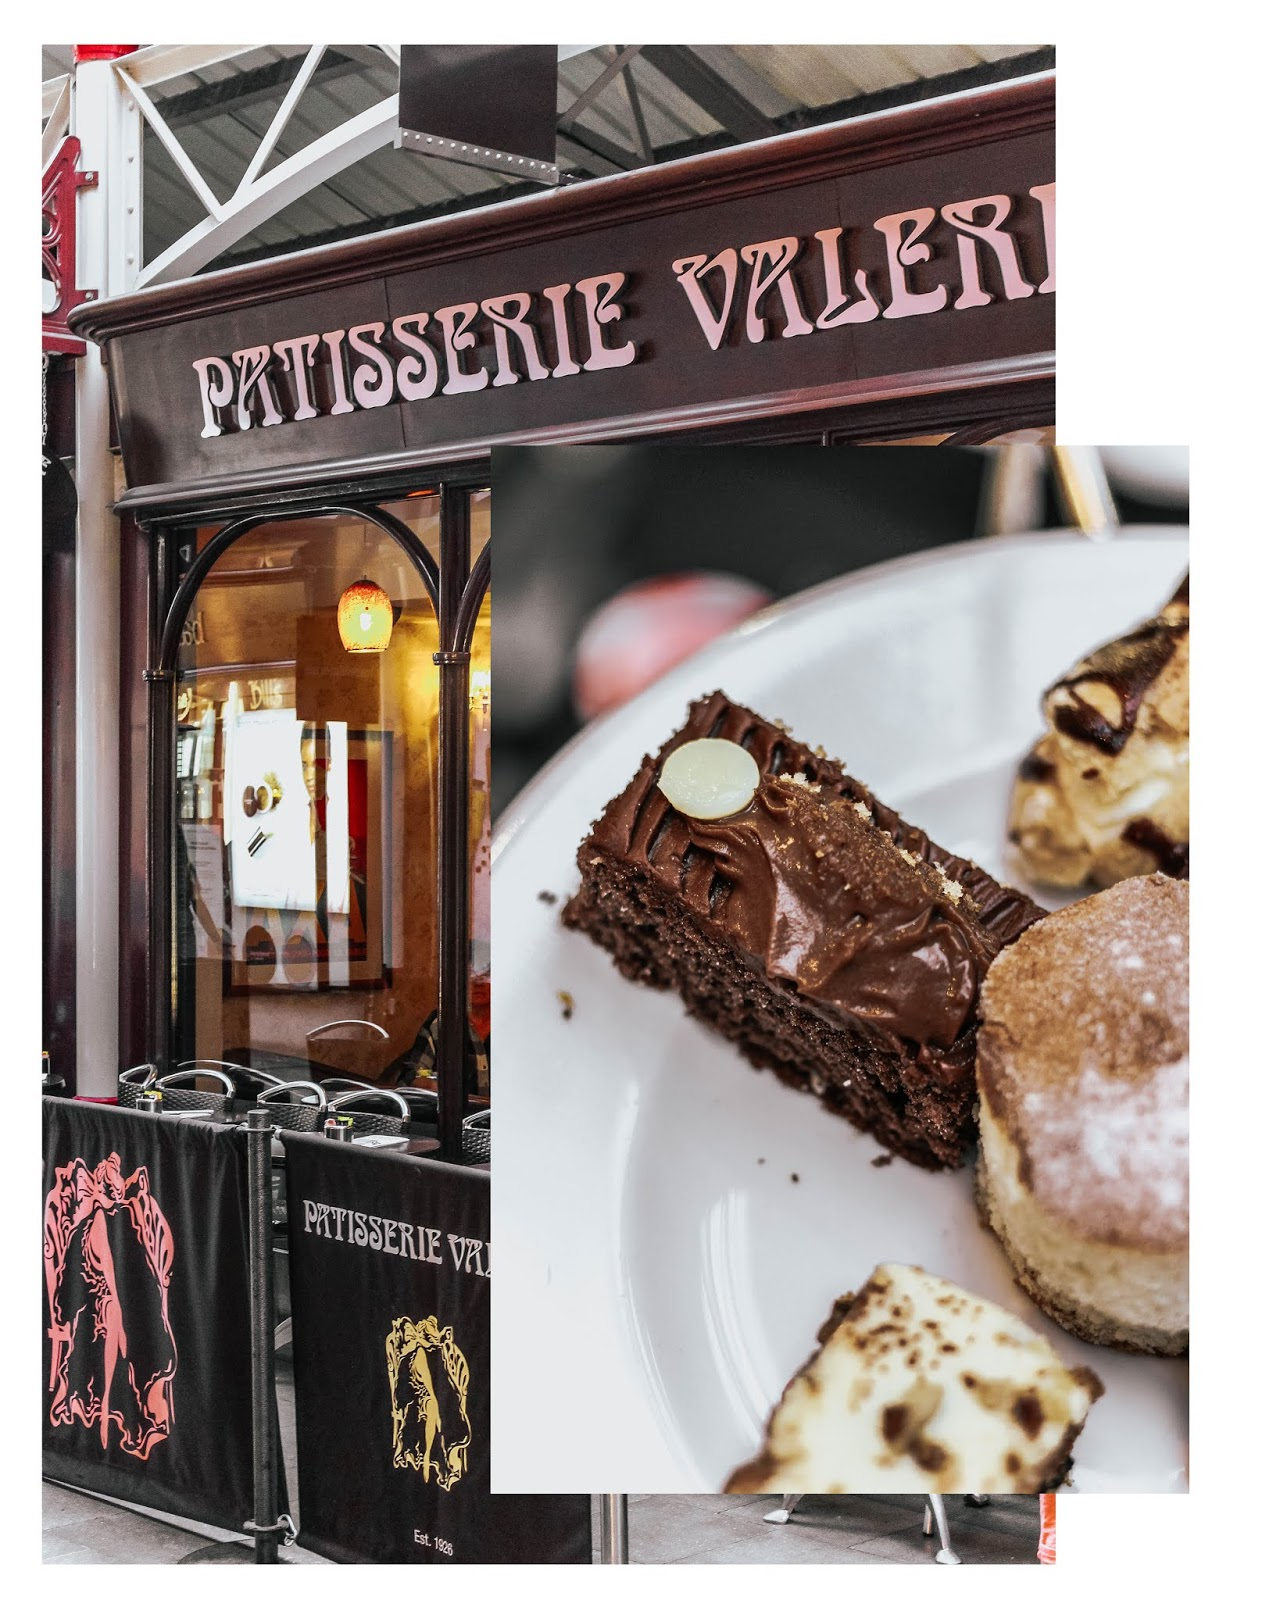 Patisserie Valerie Afternoon Tea Blog Review